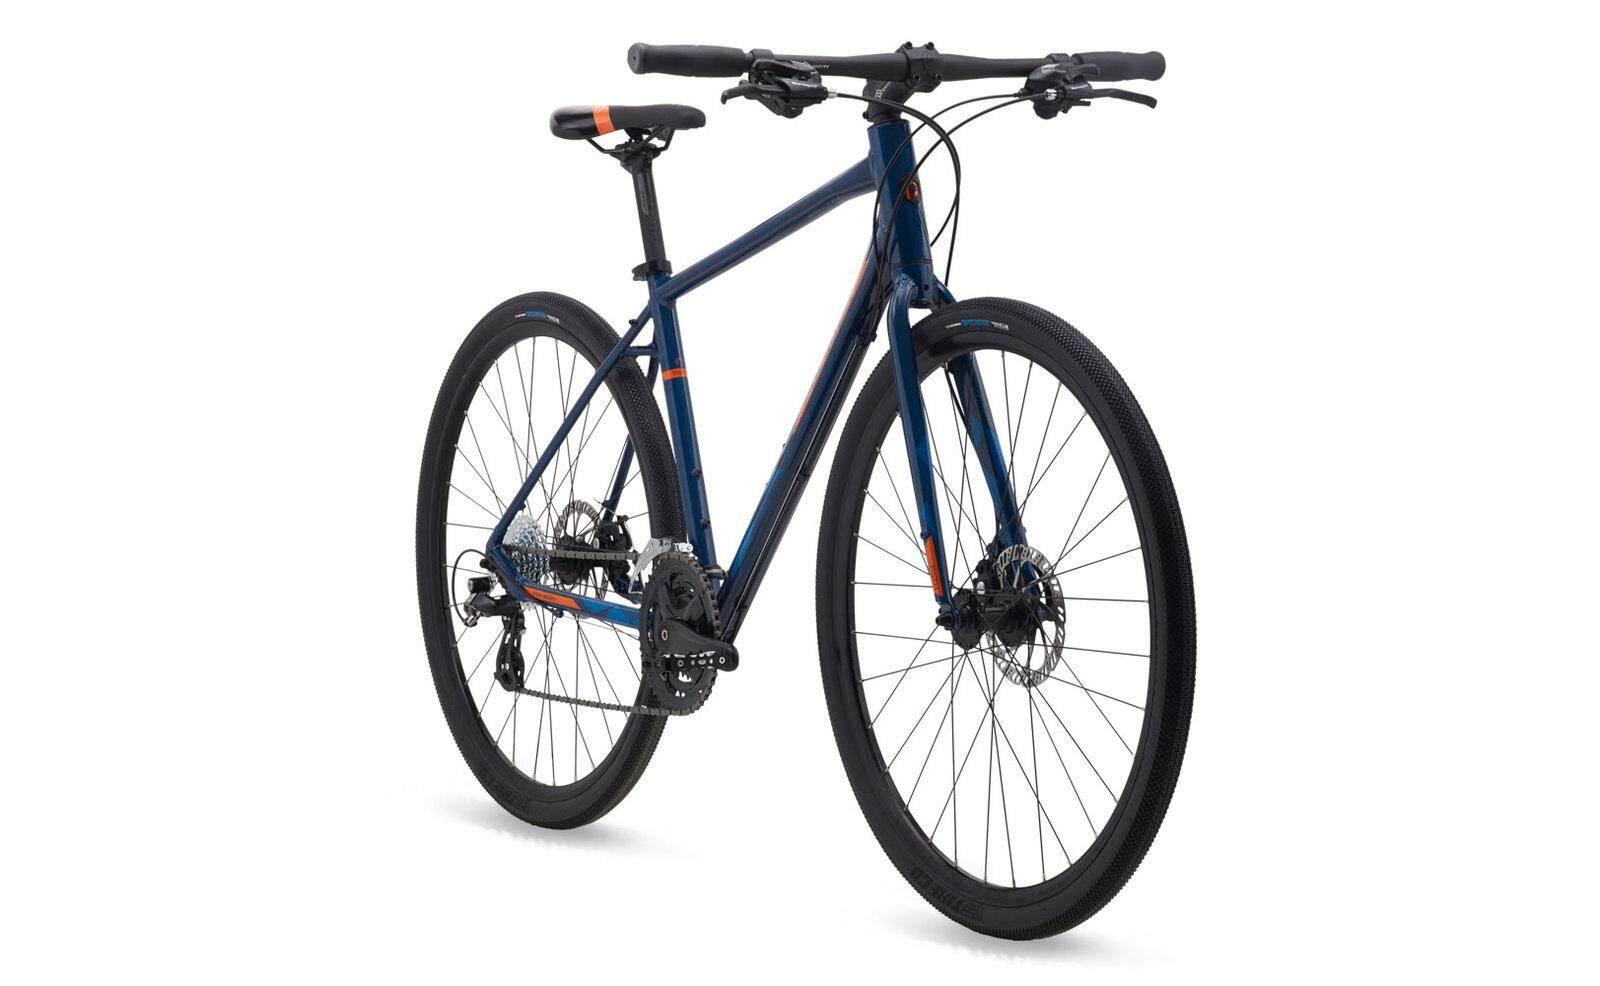 Polygon Path 2 Disc - 29er City Bike Hybrid bikes